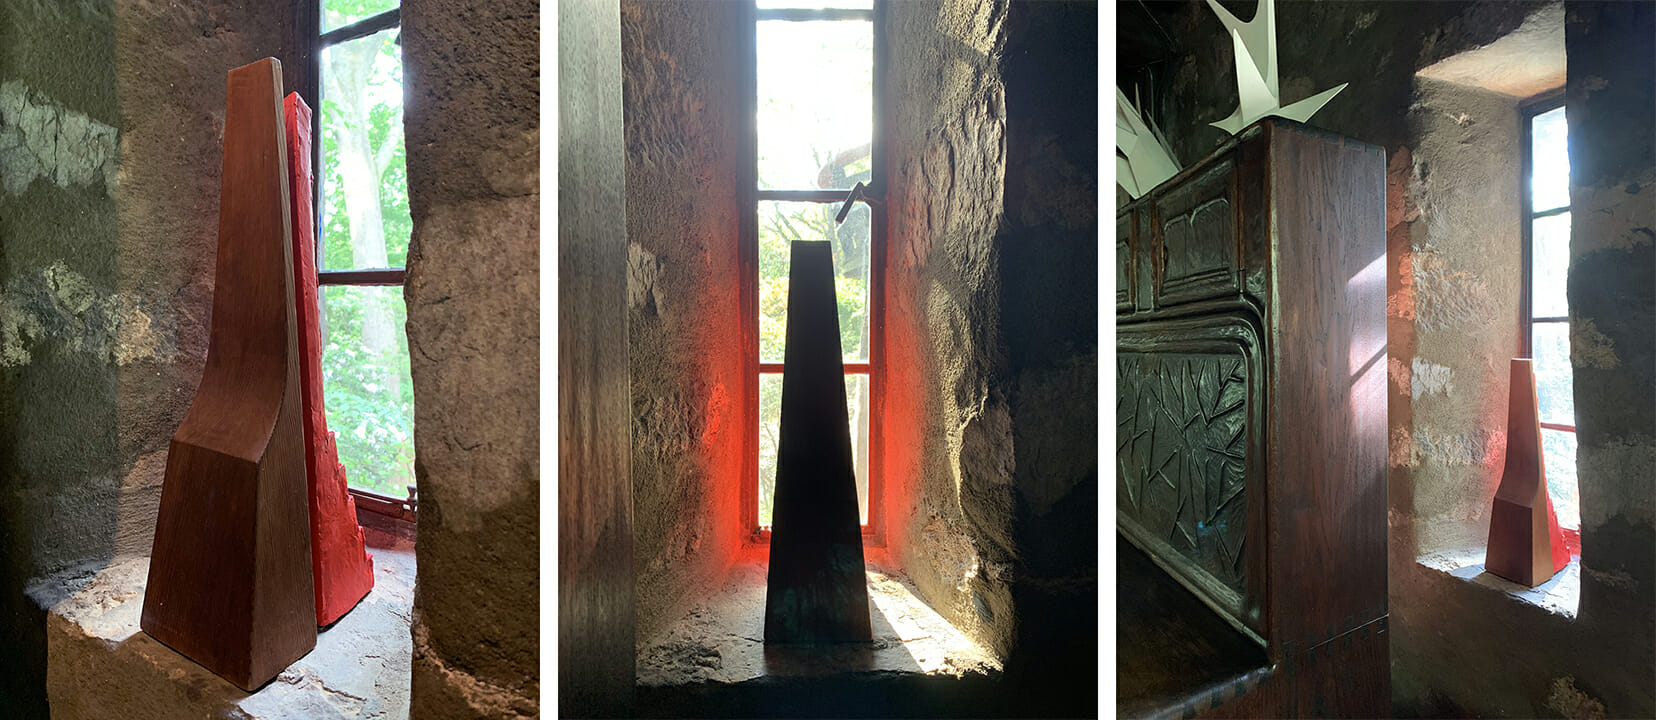 Three views of a deeply recessed window with a pine sculpture with a red sculpture behind it which casts red reflections onto the stone wall.